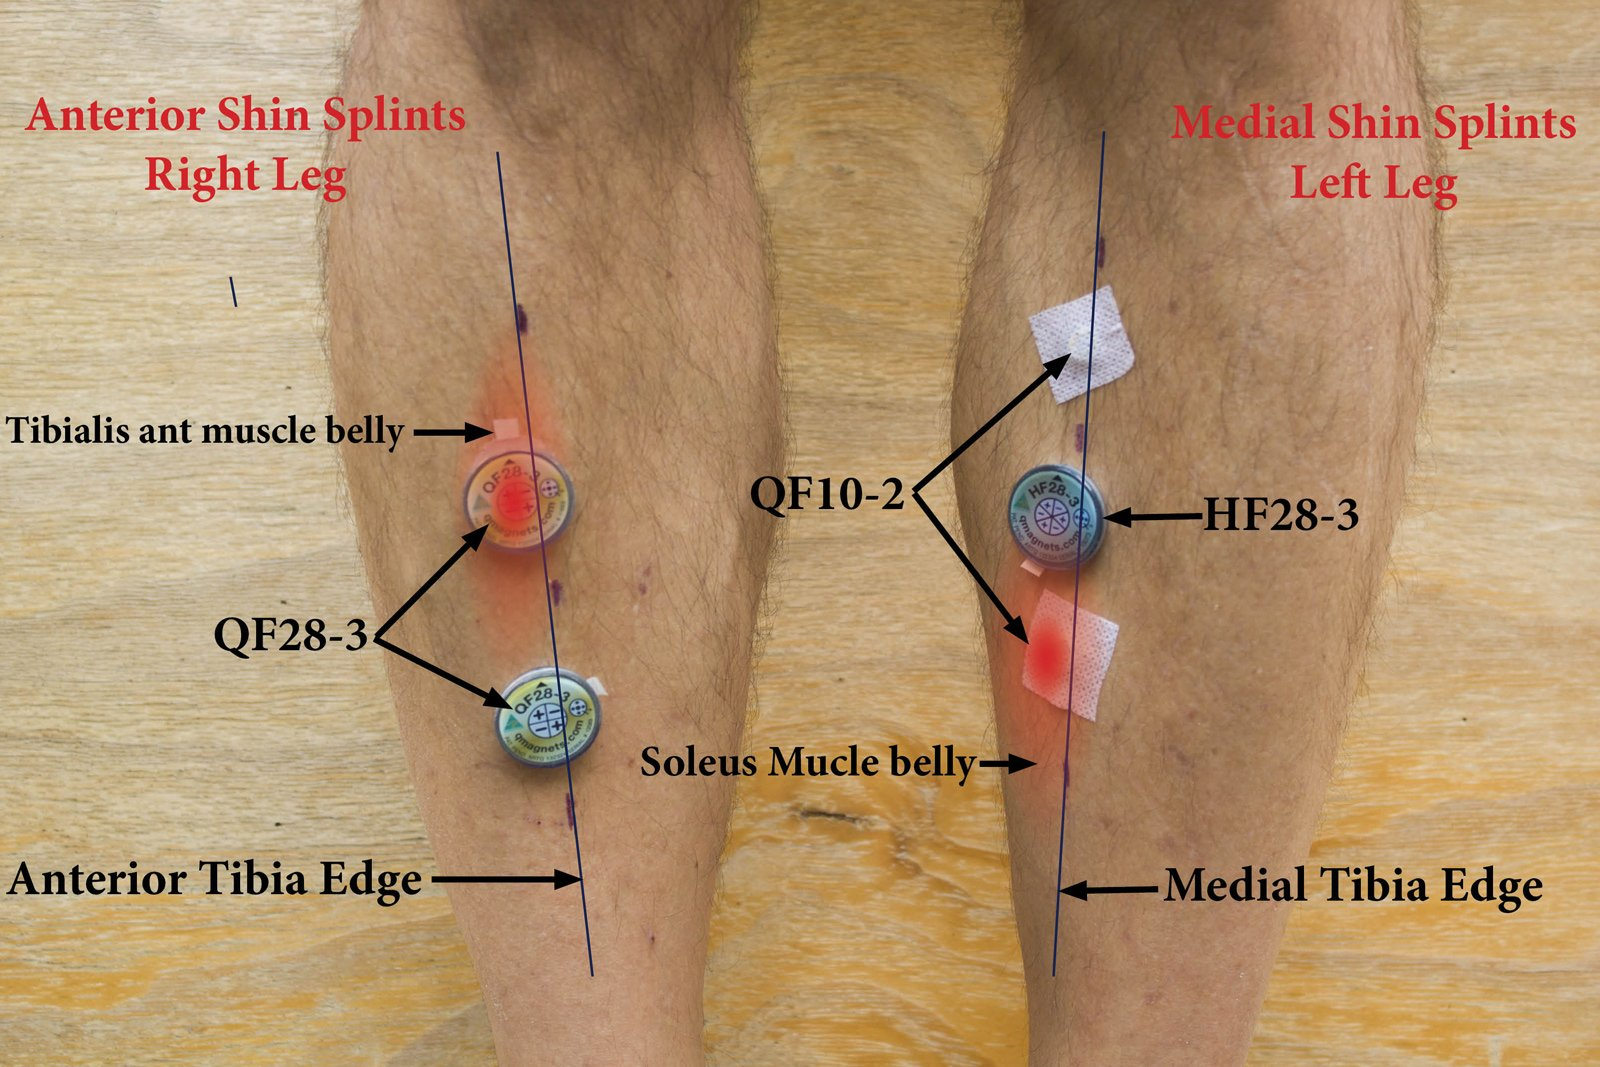 How to use Q Magnet therapy for minor shin soreness?